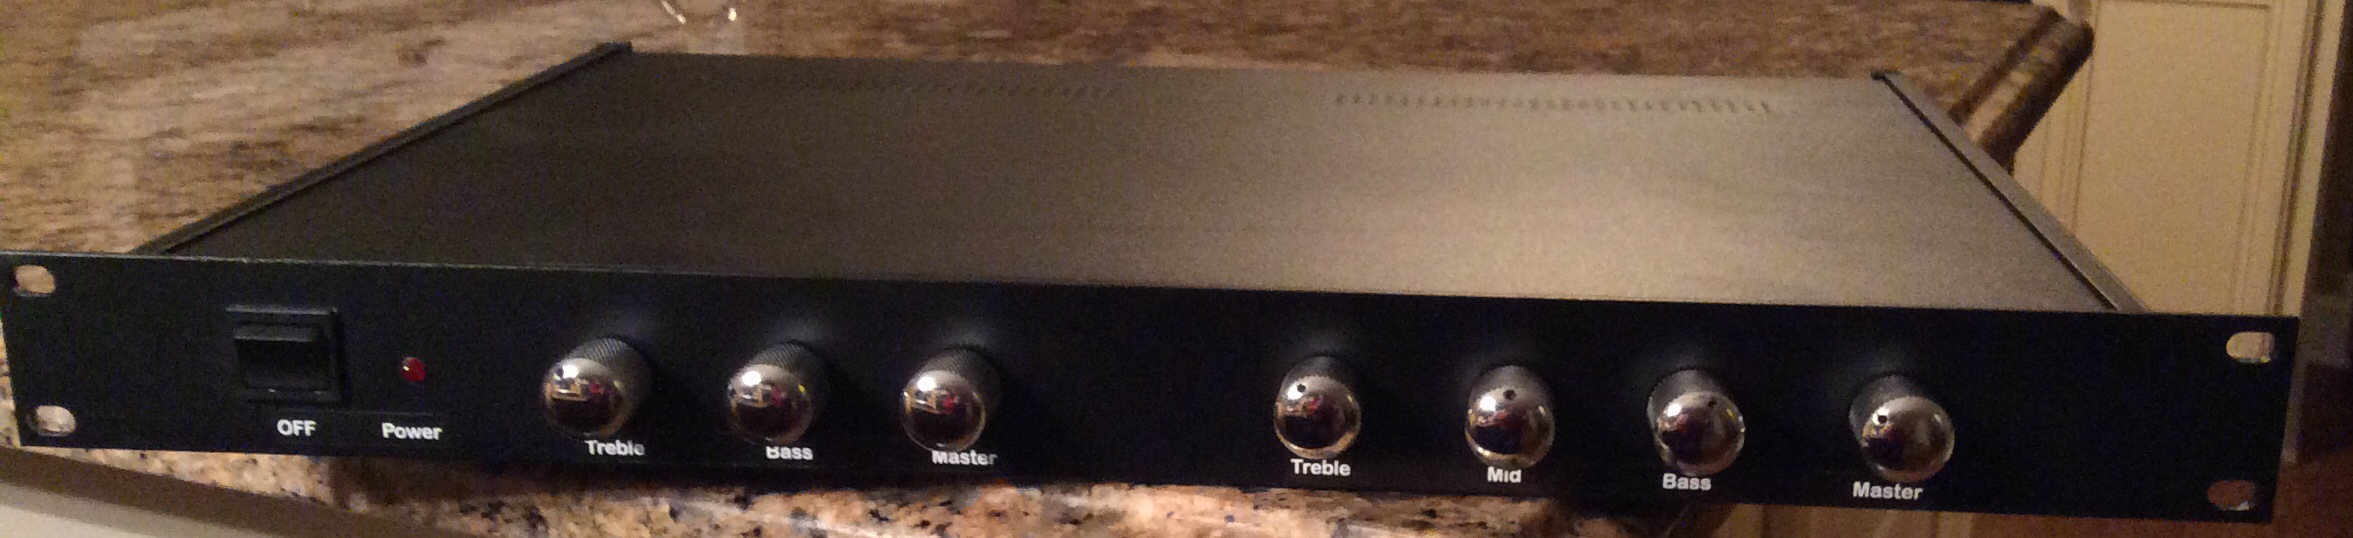 Custom 2 channel all tube handwired preamp in 1U rack, 1 channel is Fender Twin, 2nd channel is Matchless Cheiftain